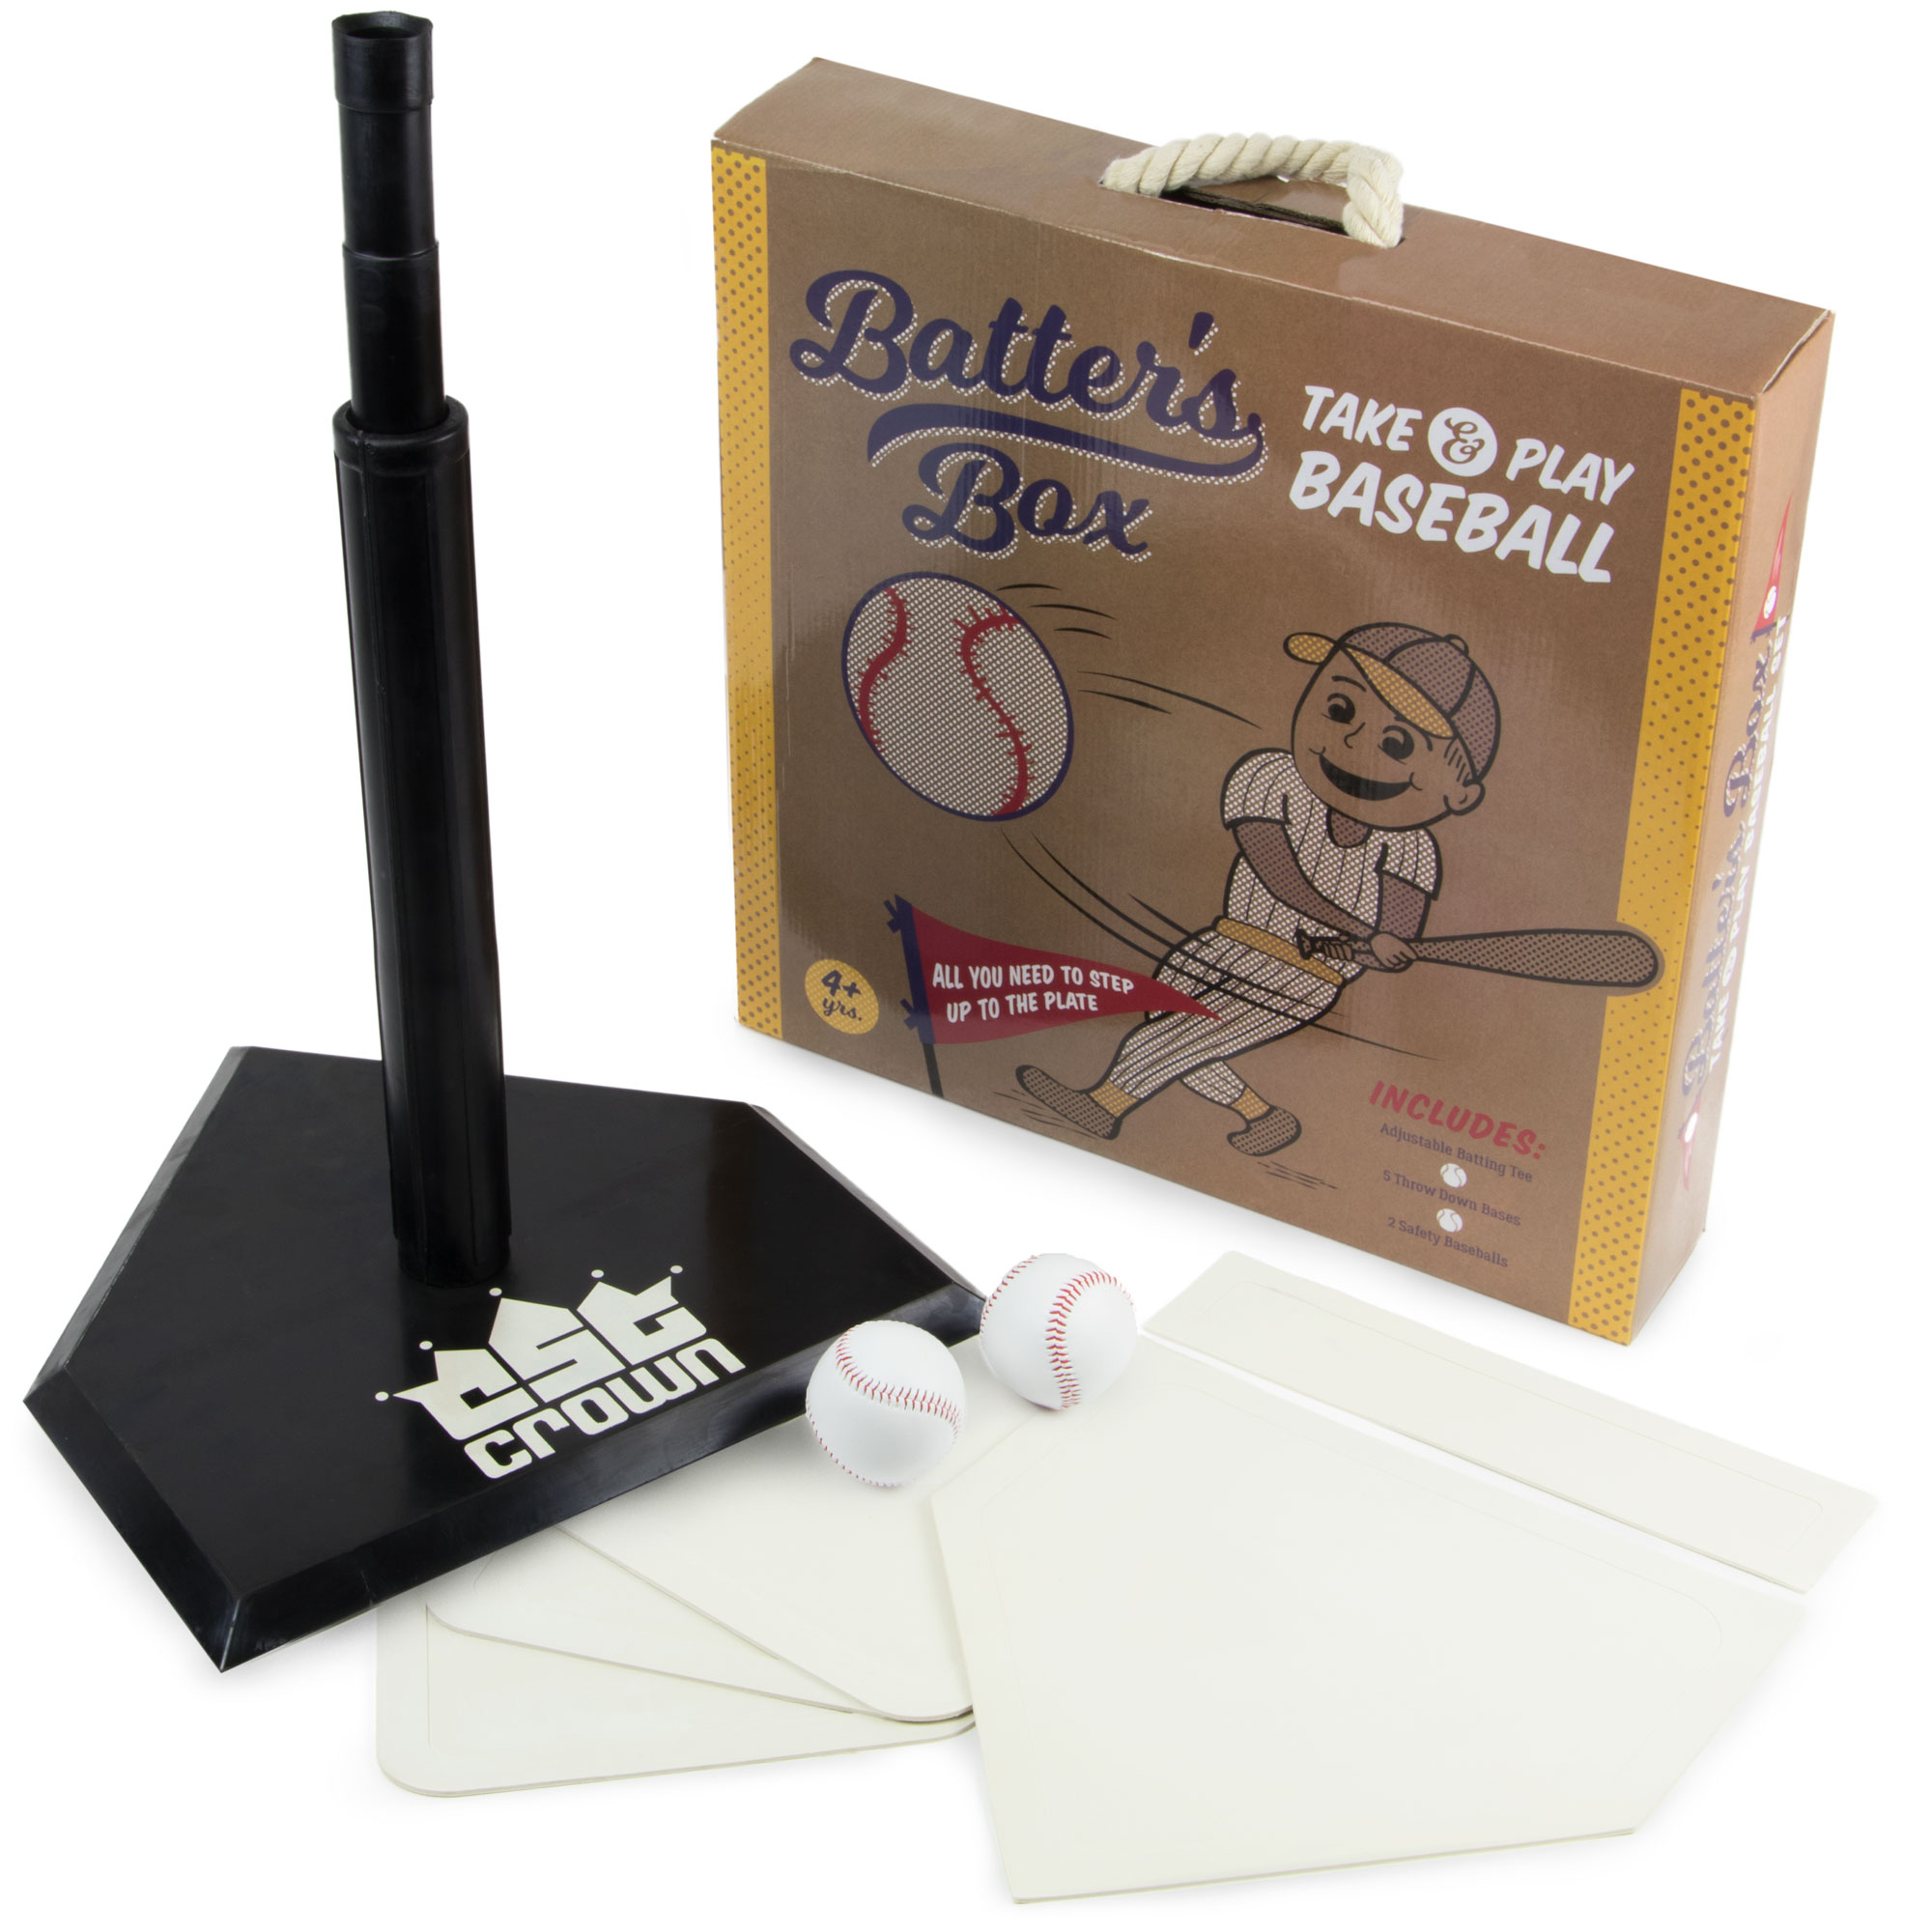 Batter's Box Take & Play Baseball Set